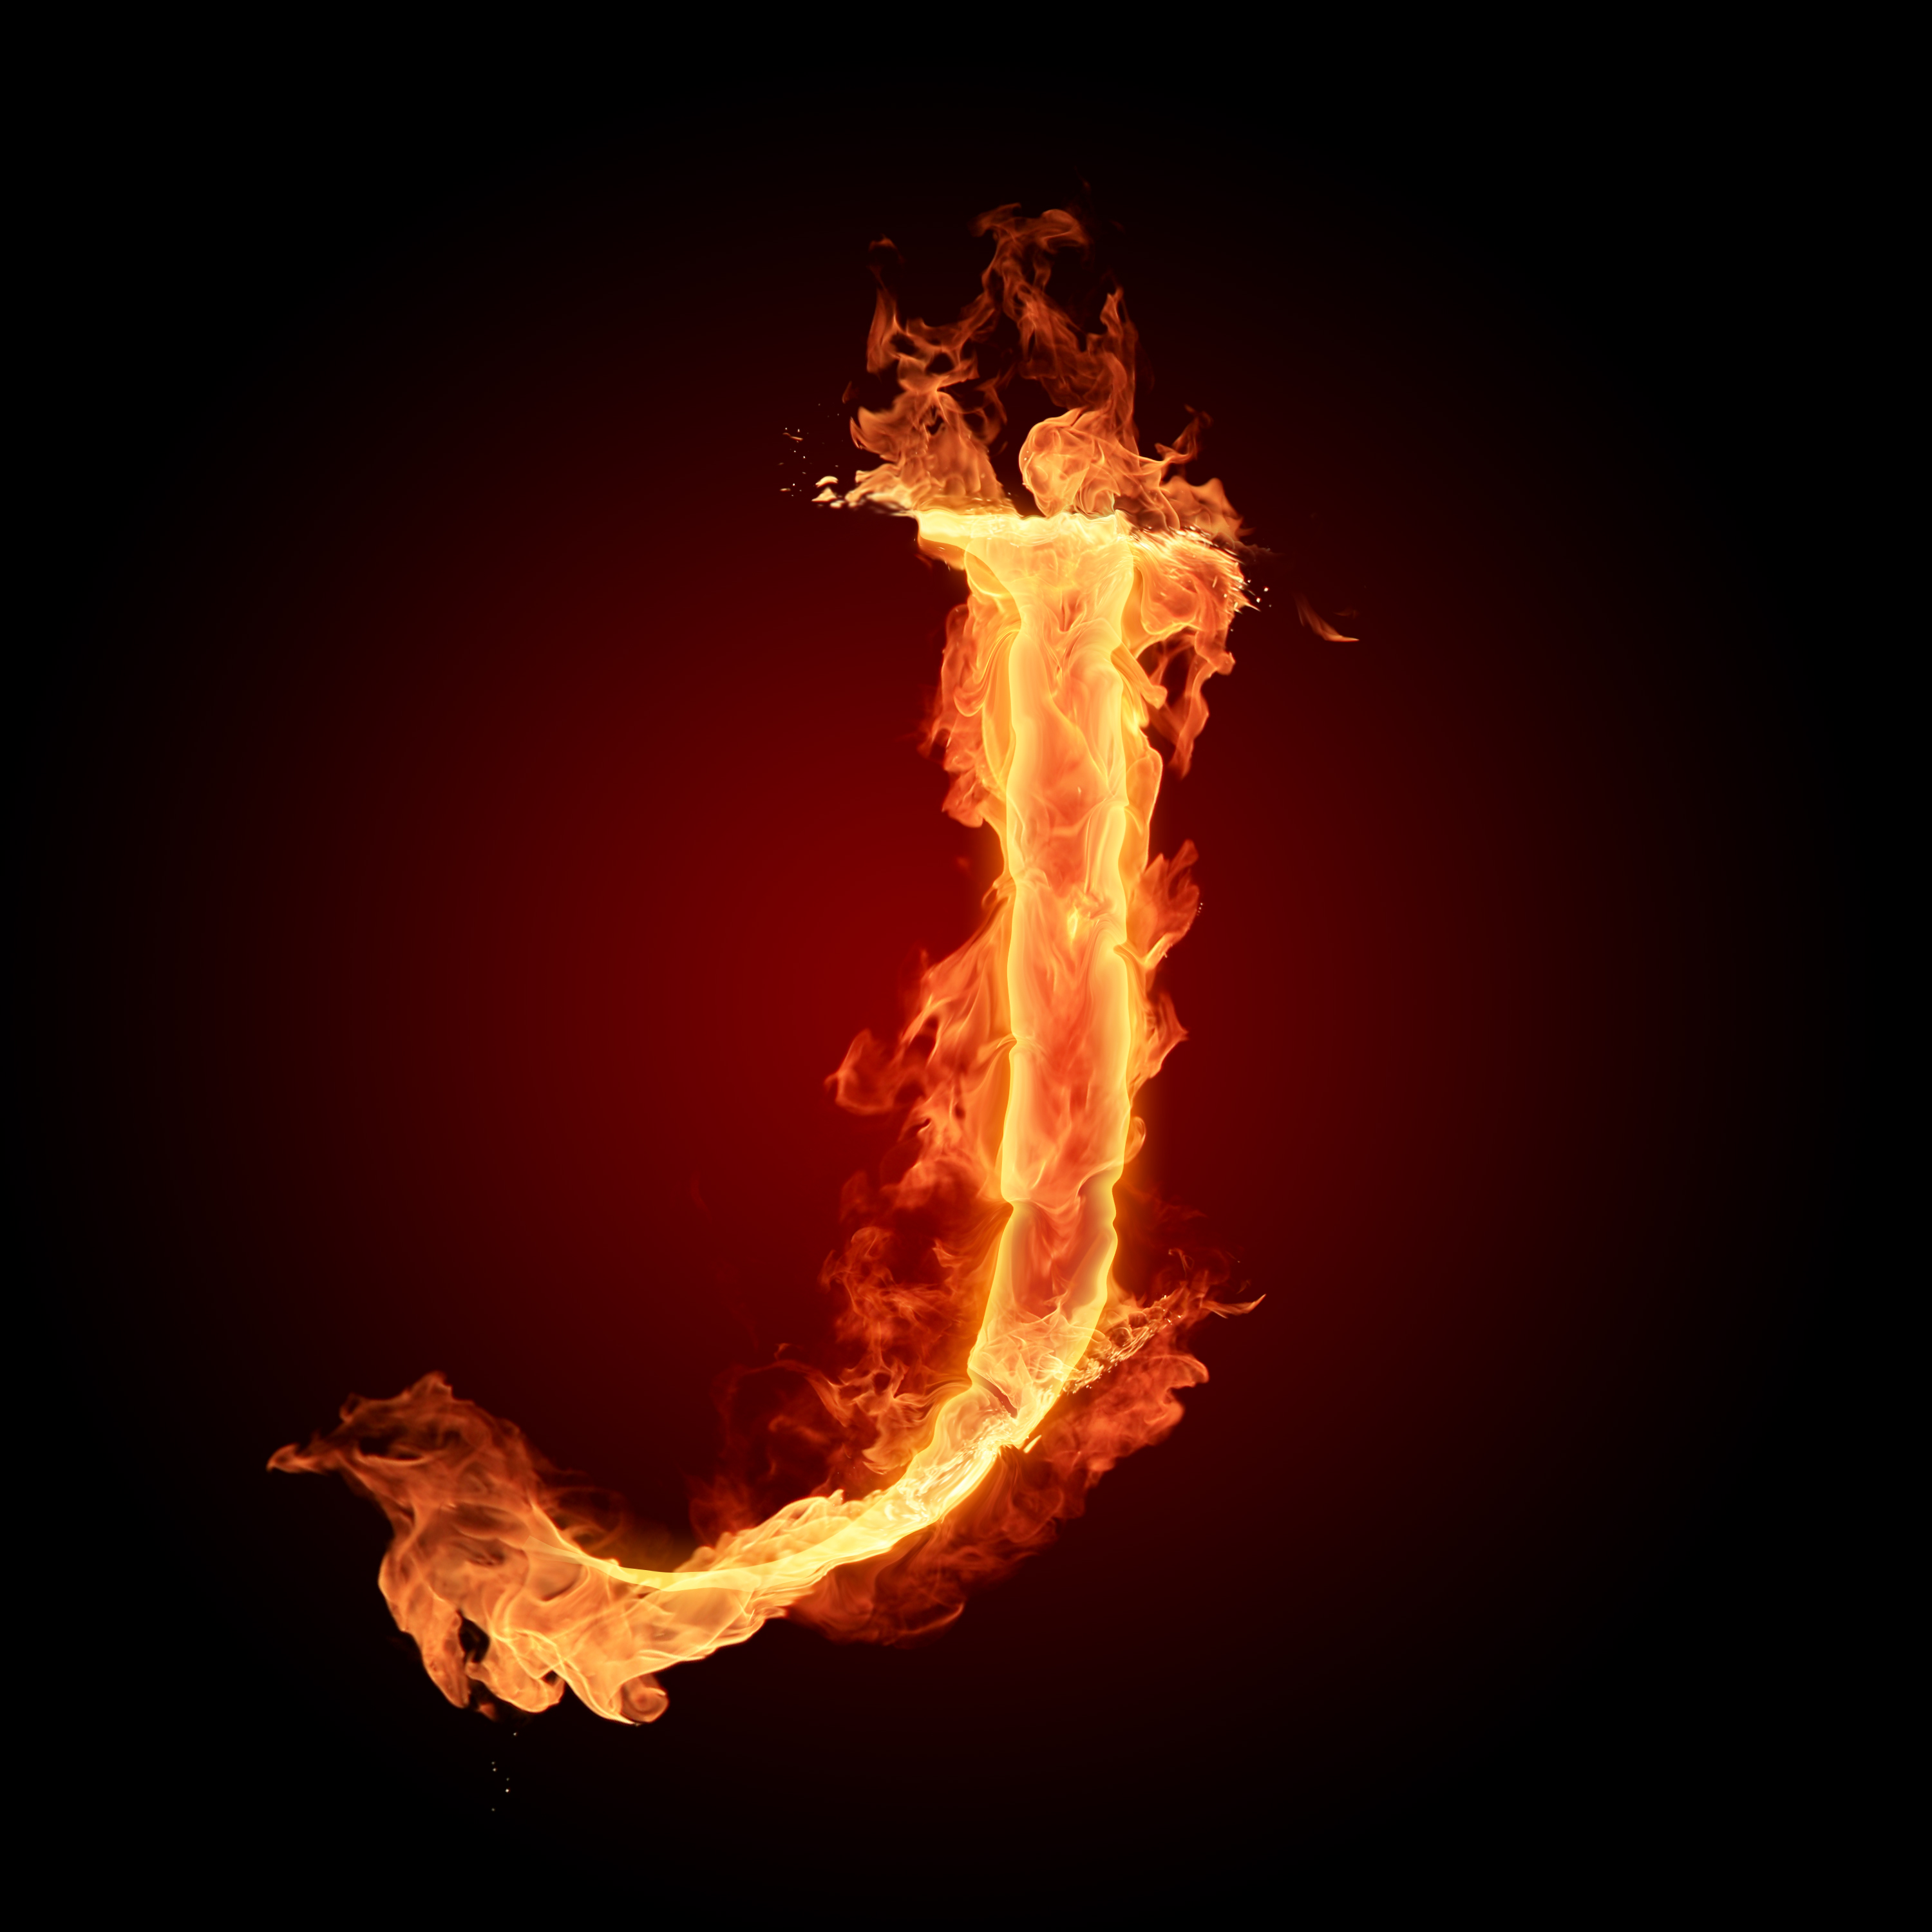 Fire Letters Wallpapers HD 3000X3000 A Z0 9   Photo 9 of 36 phombo 3000x3000